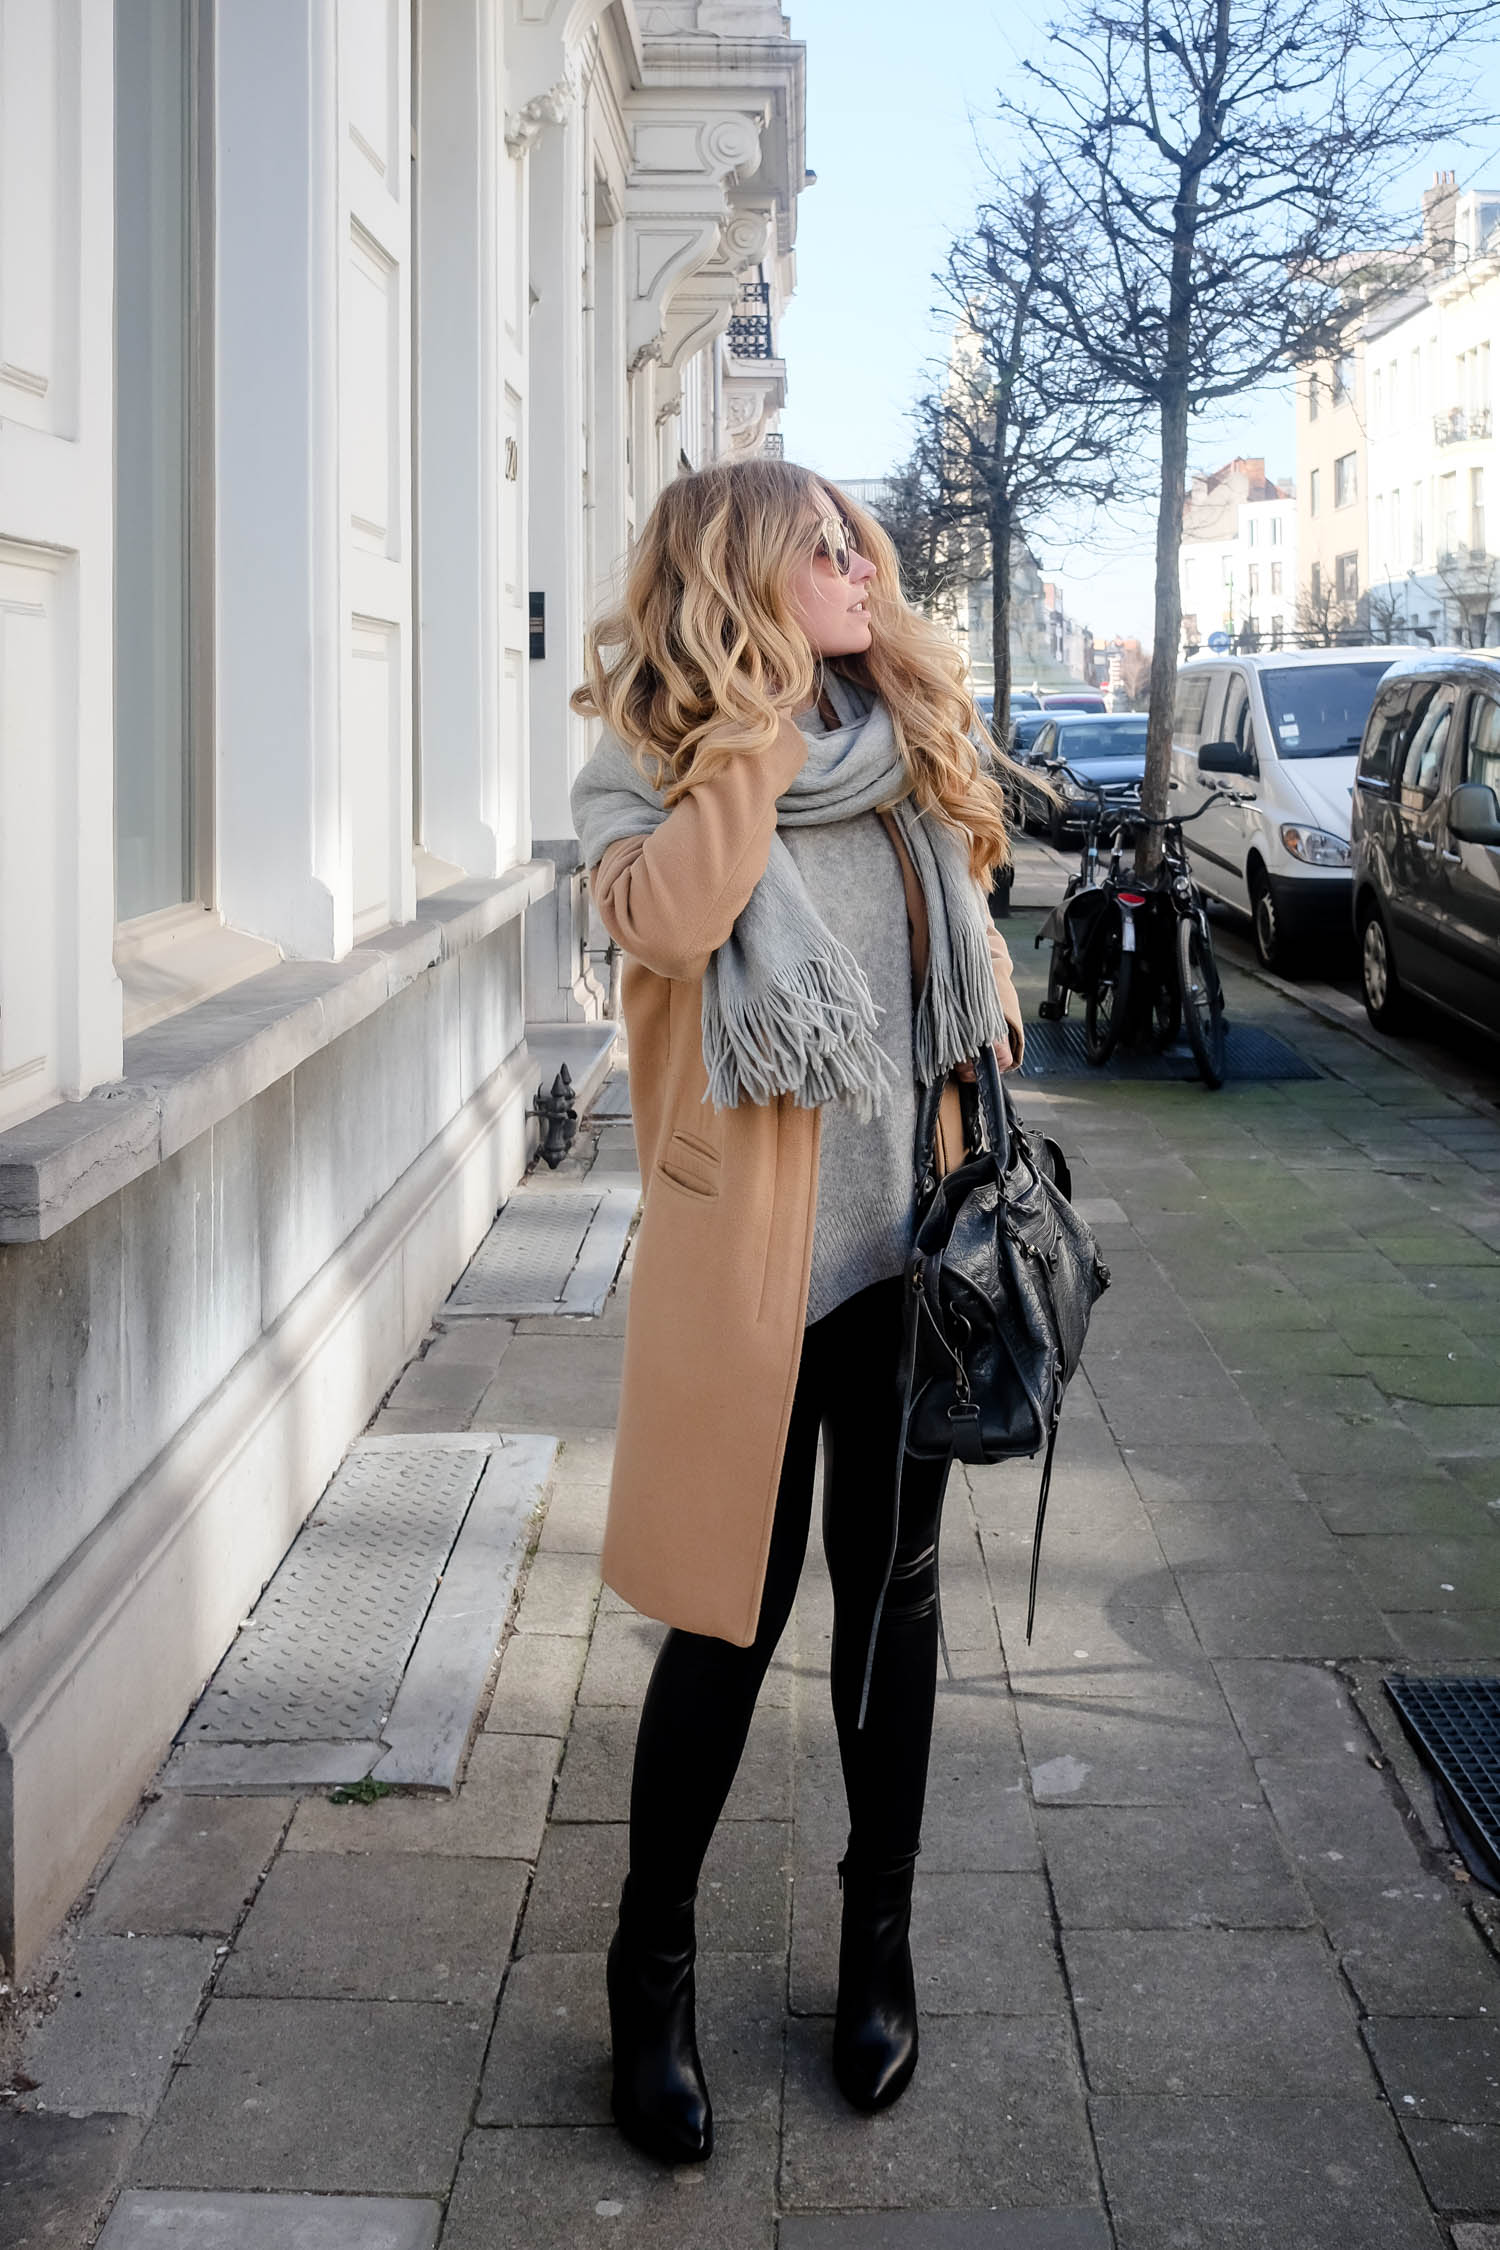 Elien Migalski Streetstyle Outfit March 2016 Sacha shoes-6